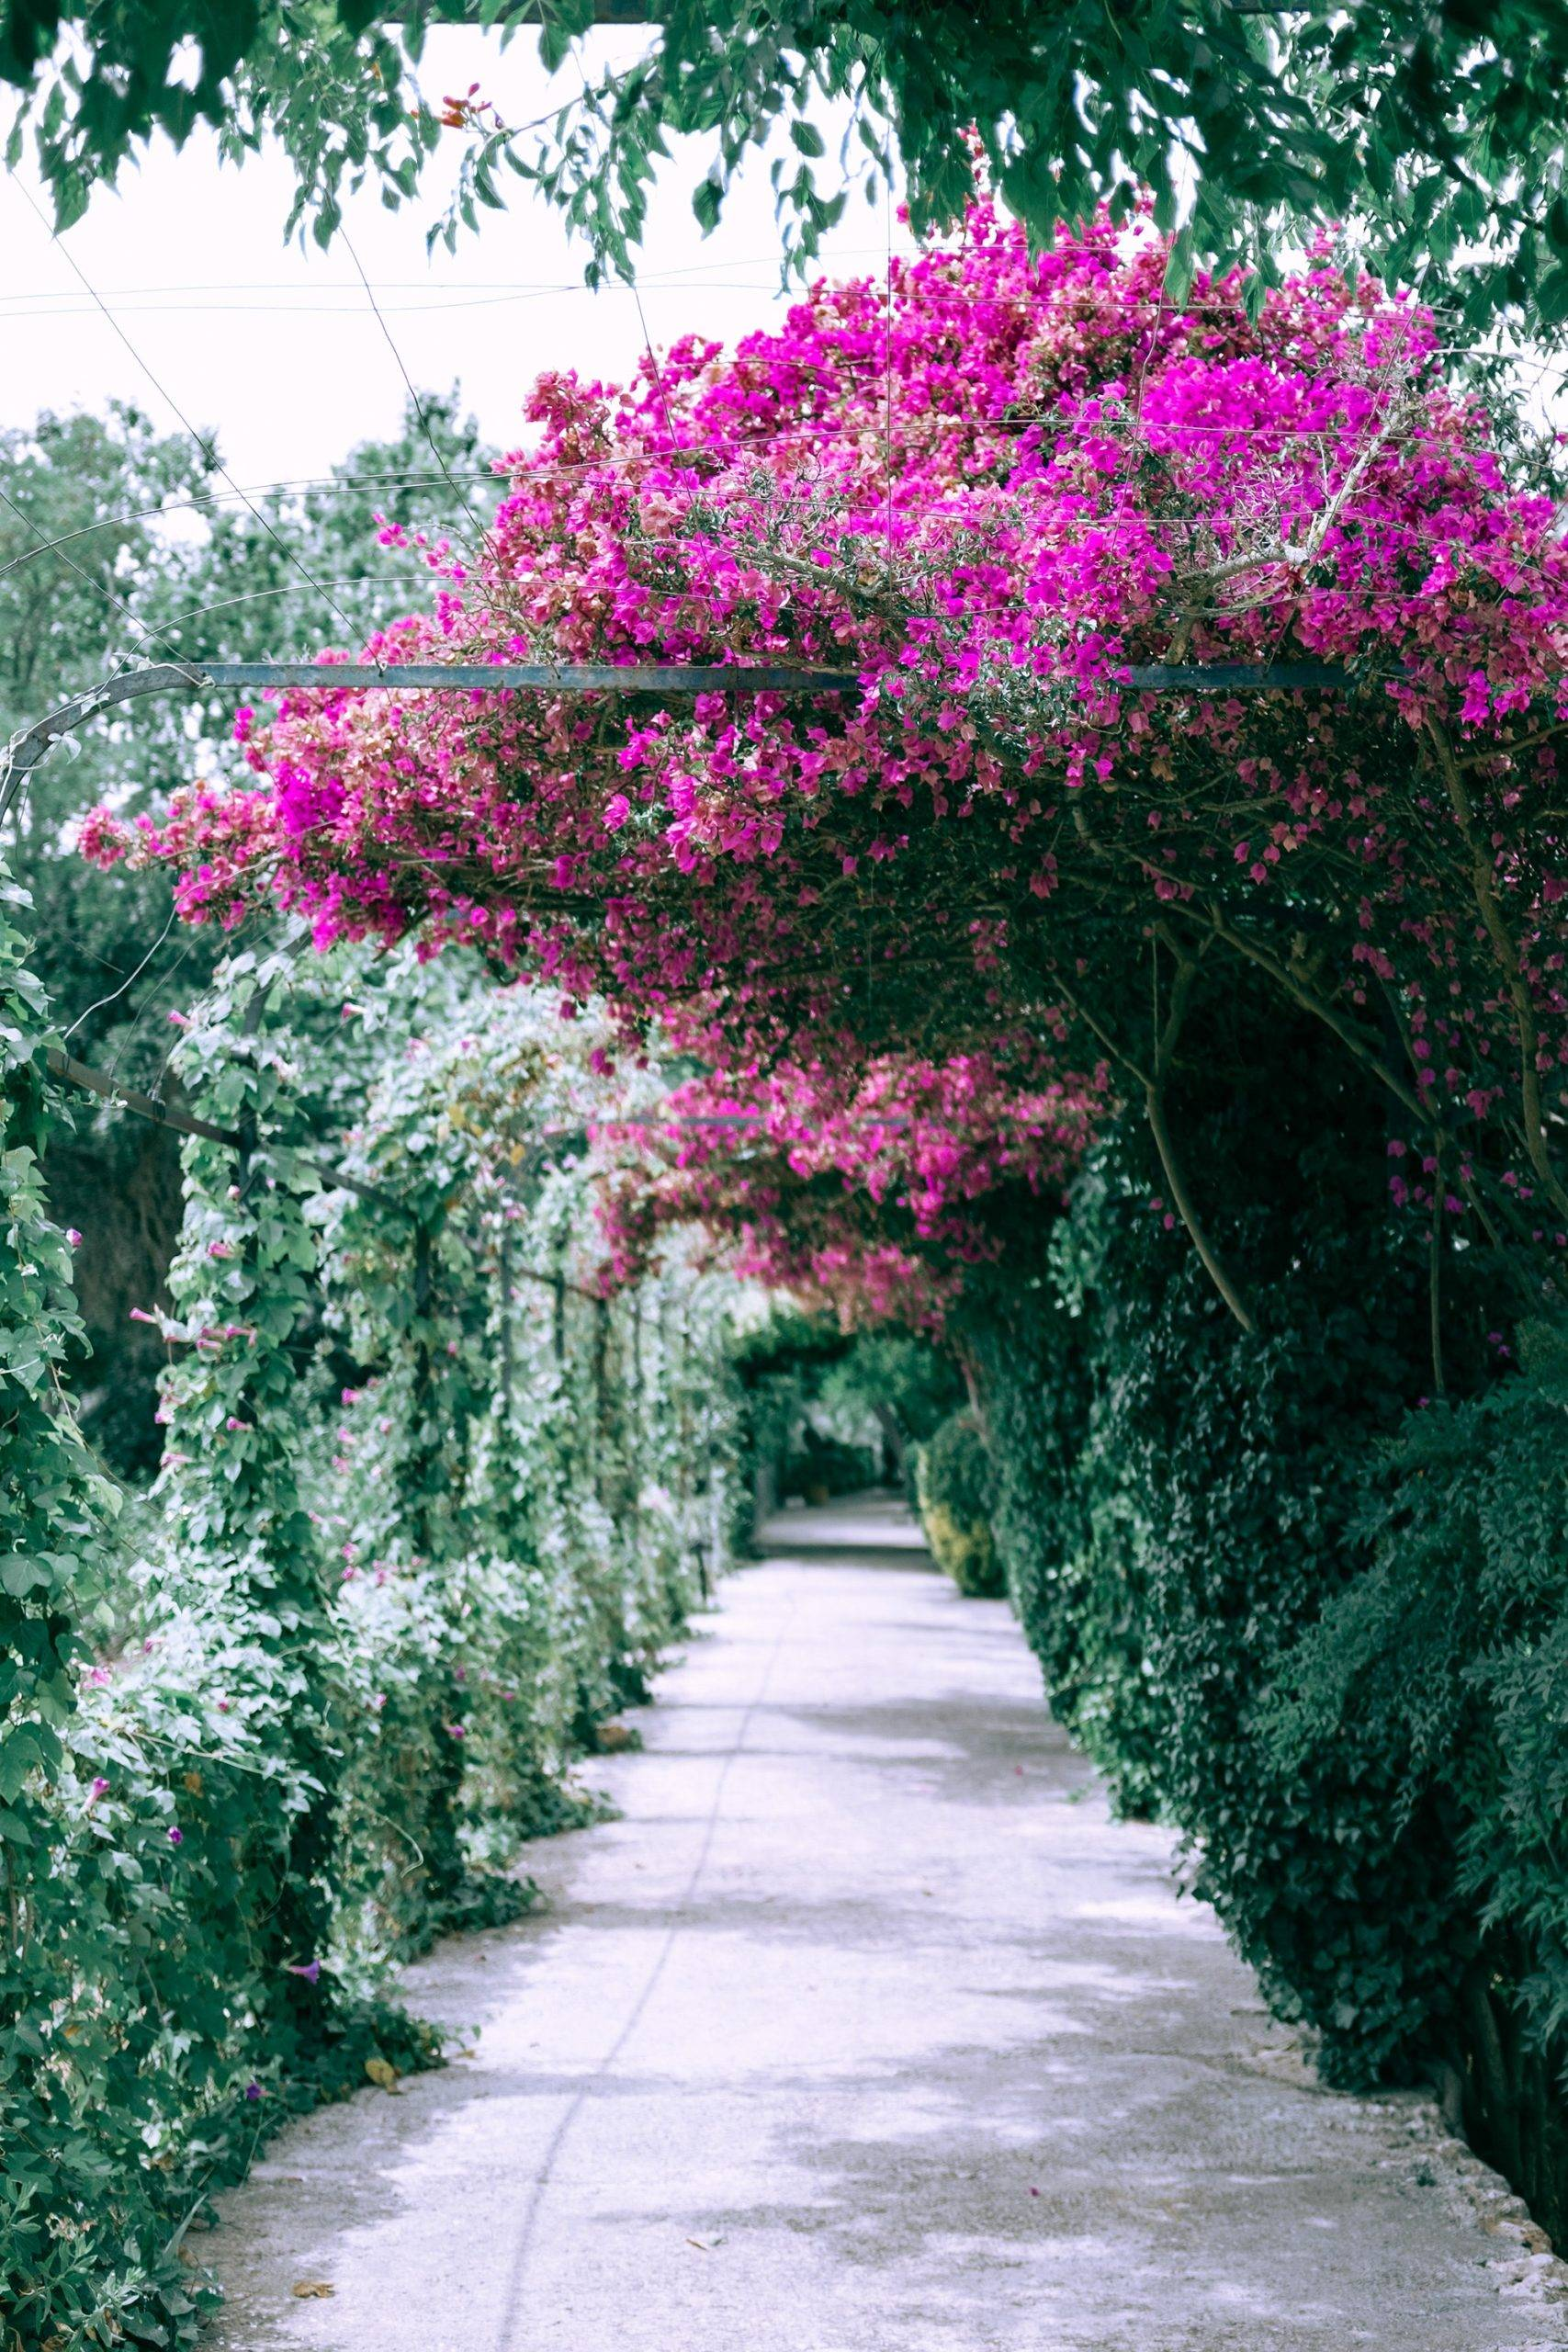 pink floral archway and stone path